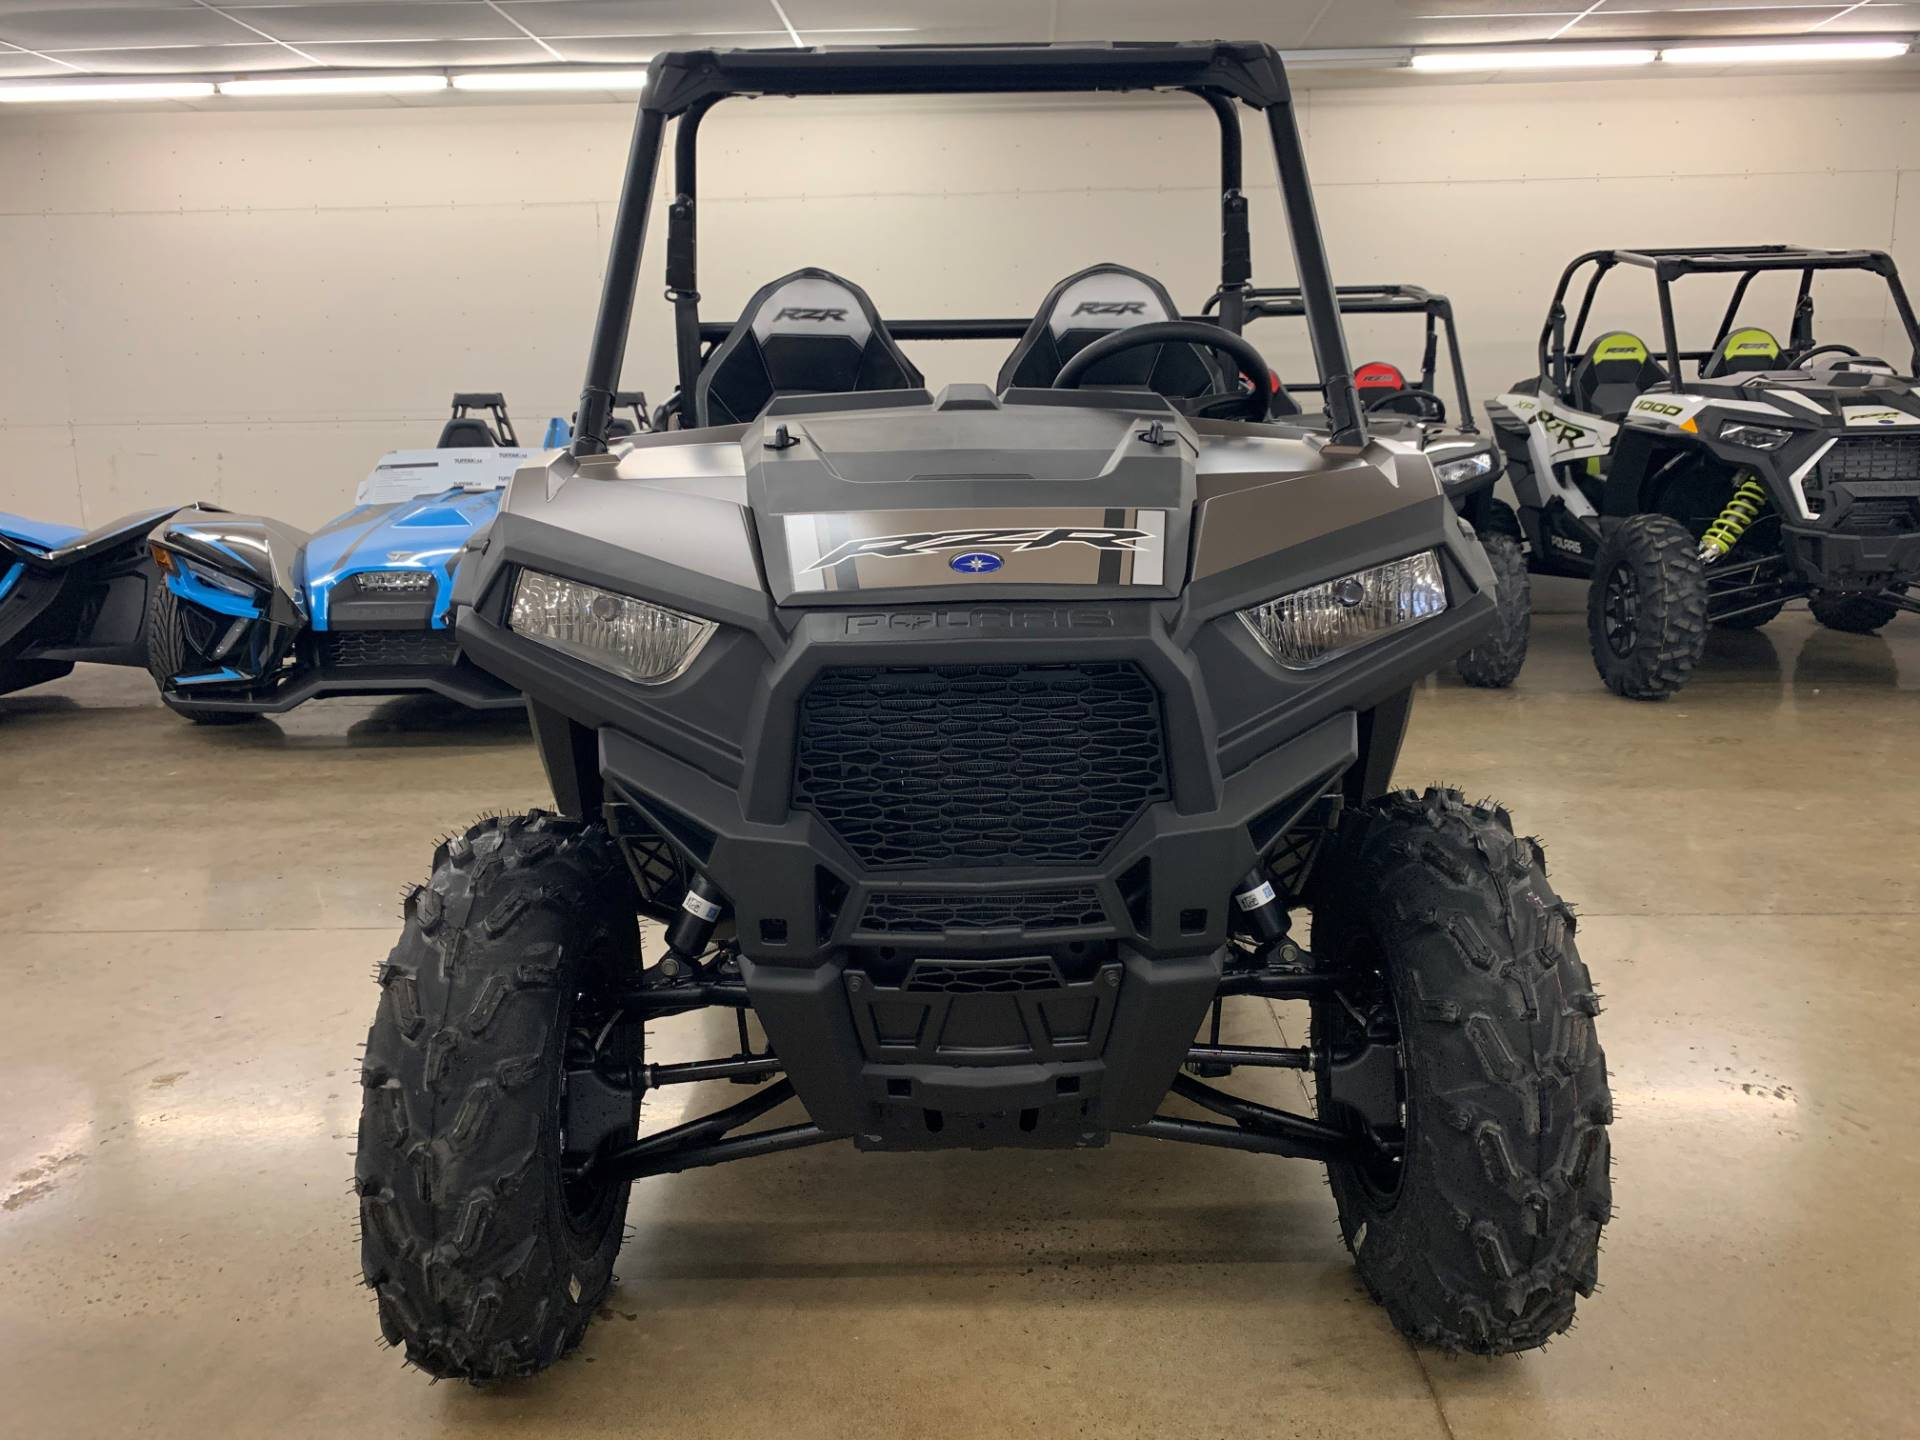 2020 Polaris RZR 900 Premium in Chicora, Pennsylvania - Photo 8